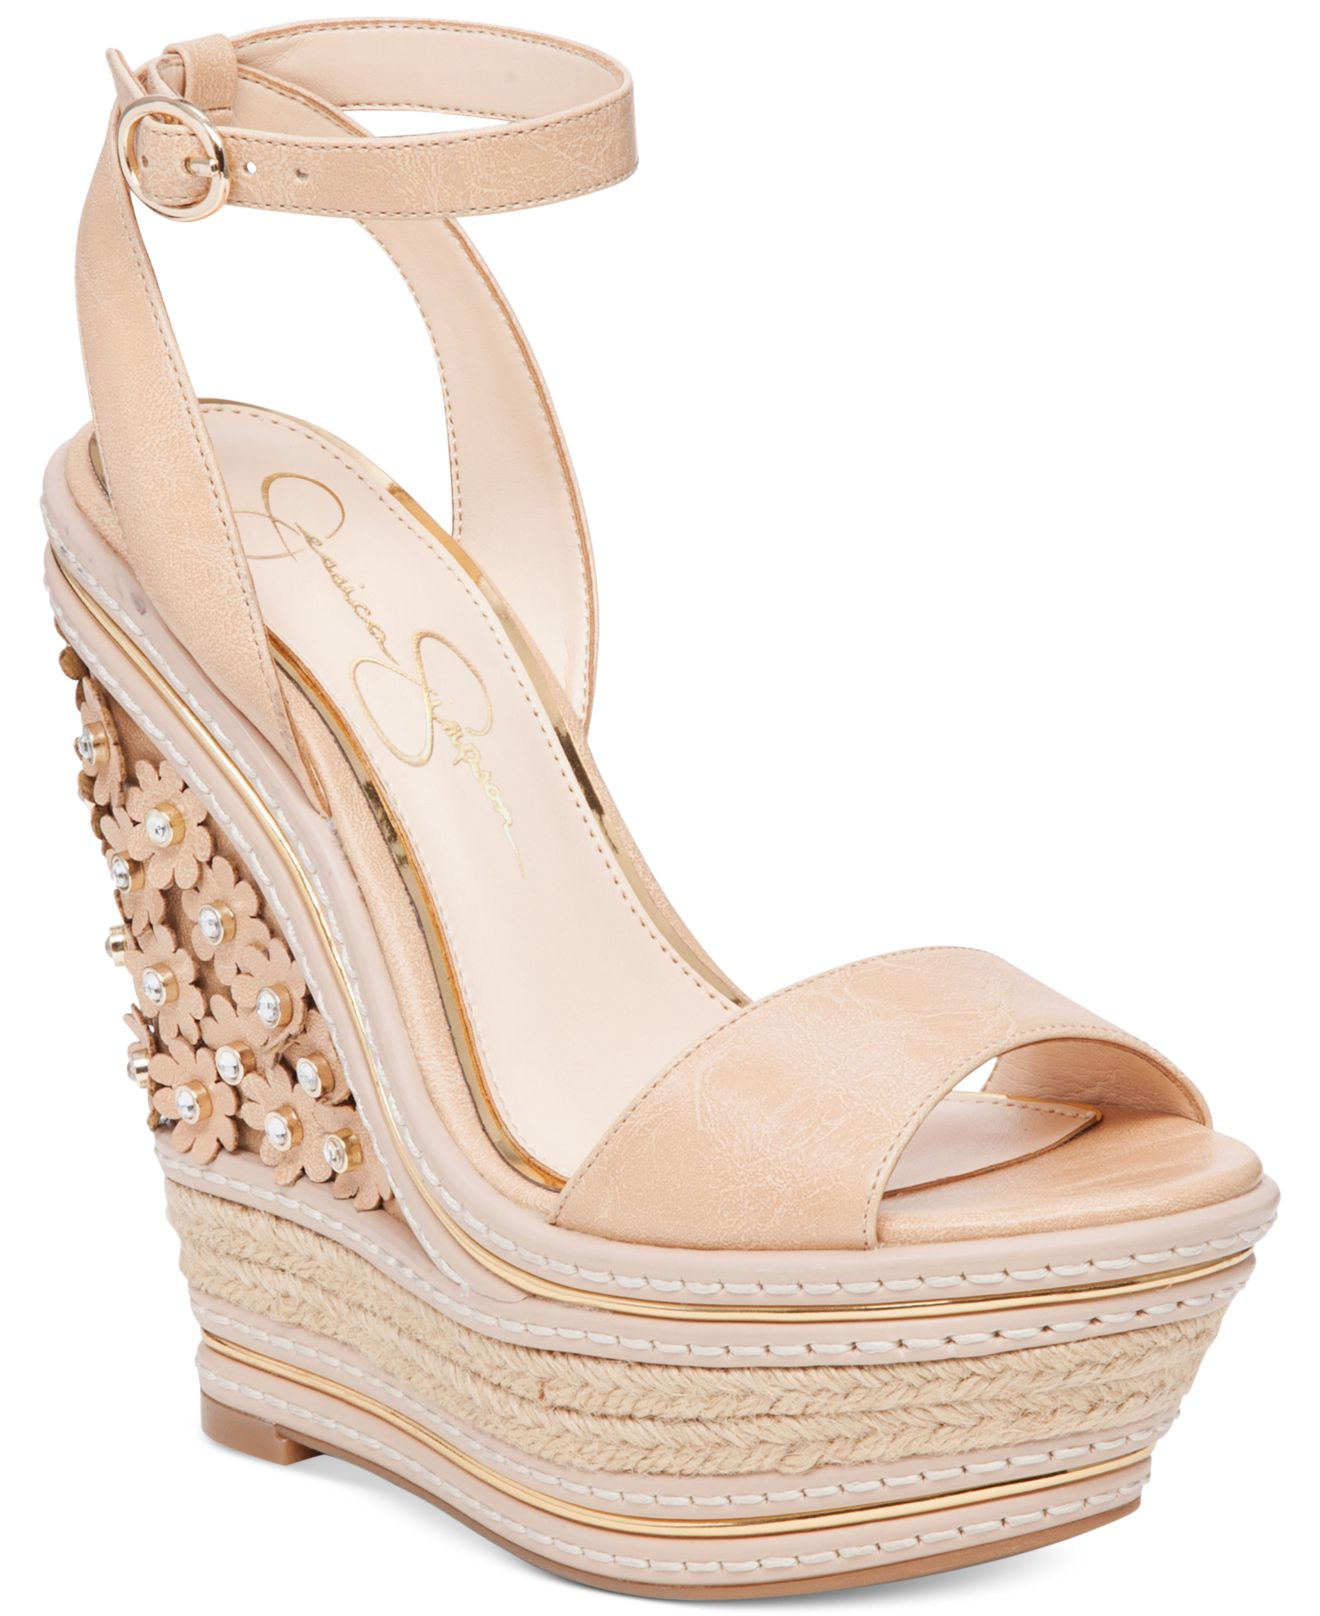 Jessica Simpson Ameka Two Piece Wedge Sandals In Natural